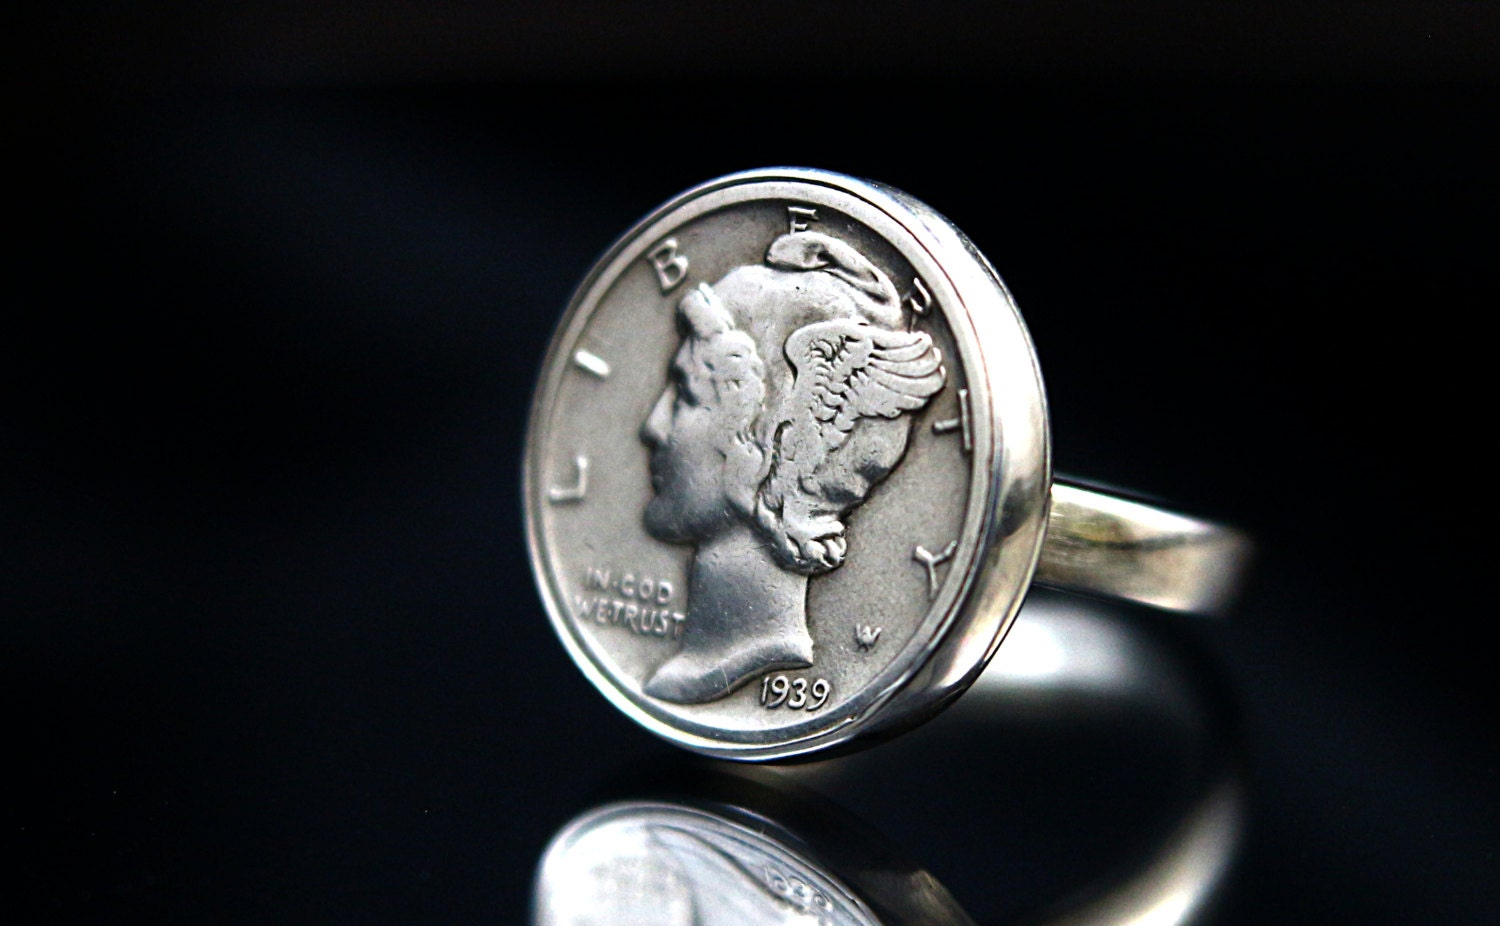 Mercury Dime Ring 925 Sterling Silver Mercury Dime Ring. Jared Rings. Mystic Fire Rings. $12 000 Wedding Rings. Ethereal Engagement Rings. Portuguese Traditional Wedding Rings. Simpleengagement Wedding Rings. Angara Wedding Rings. Kwiat Engagement Rings